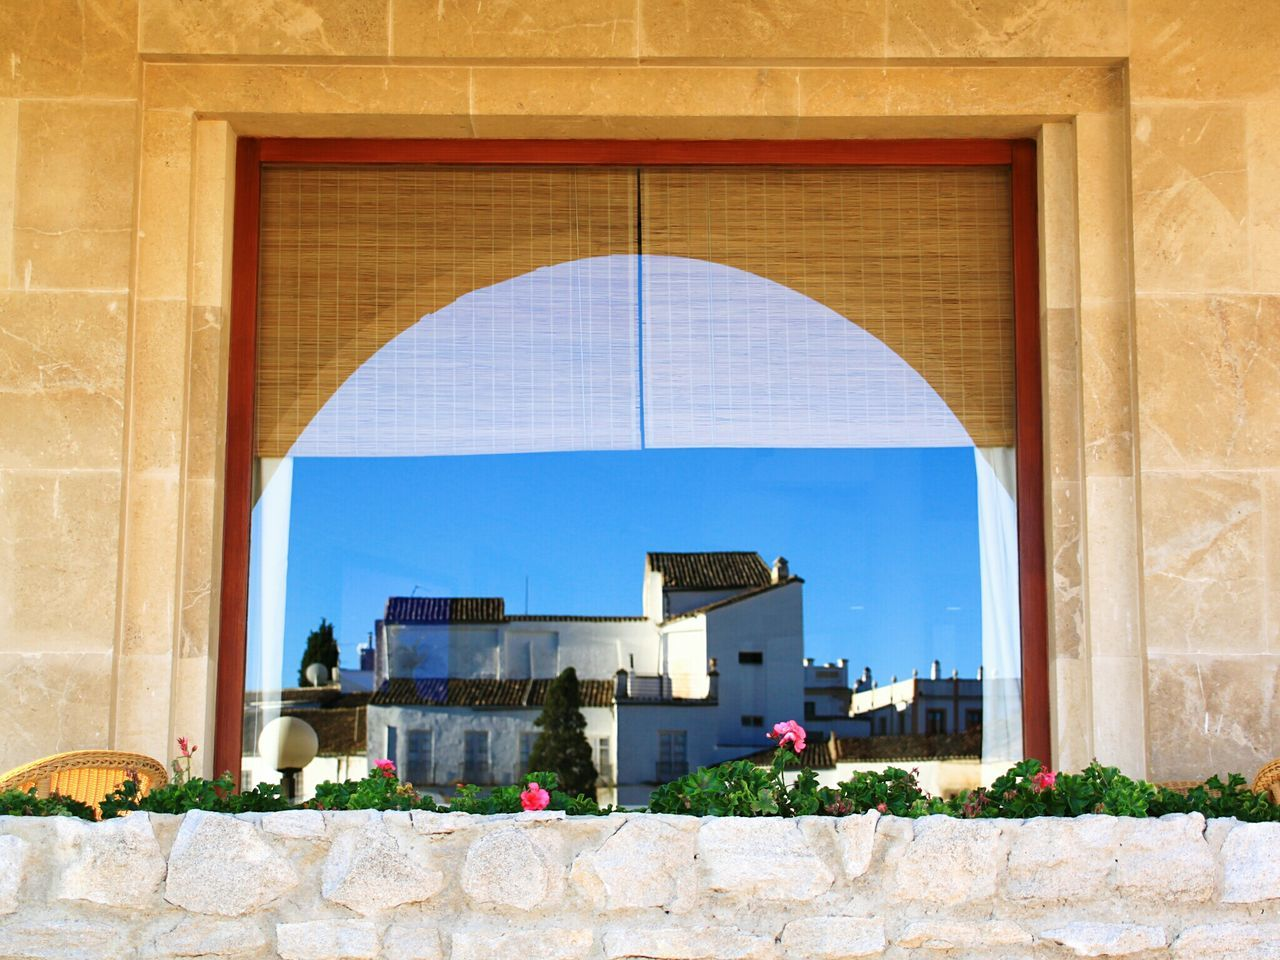 Architecture No People Travel Destinations Building Exterior Outdoors Day Blue Clear Sky Travel Sky Cityscapes Check This Out EyeEm Gallery White Houses Ronda, Malaga Ronda Spain Ronda Window Reflection Reflection_collection Reflection In The Window Reflections In The Glass Windows Framed Frame It! Arch